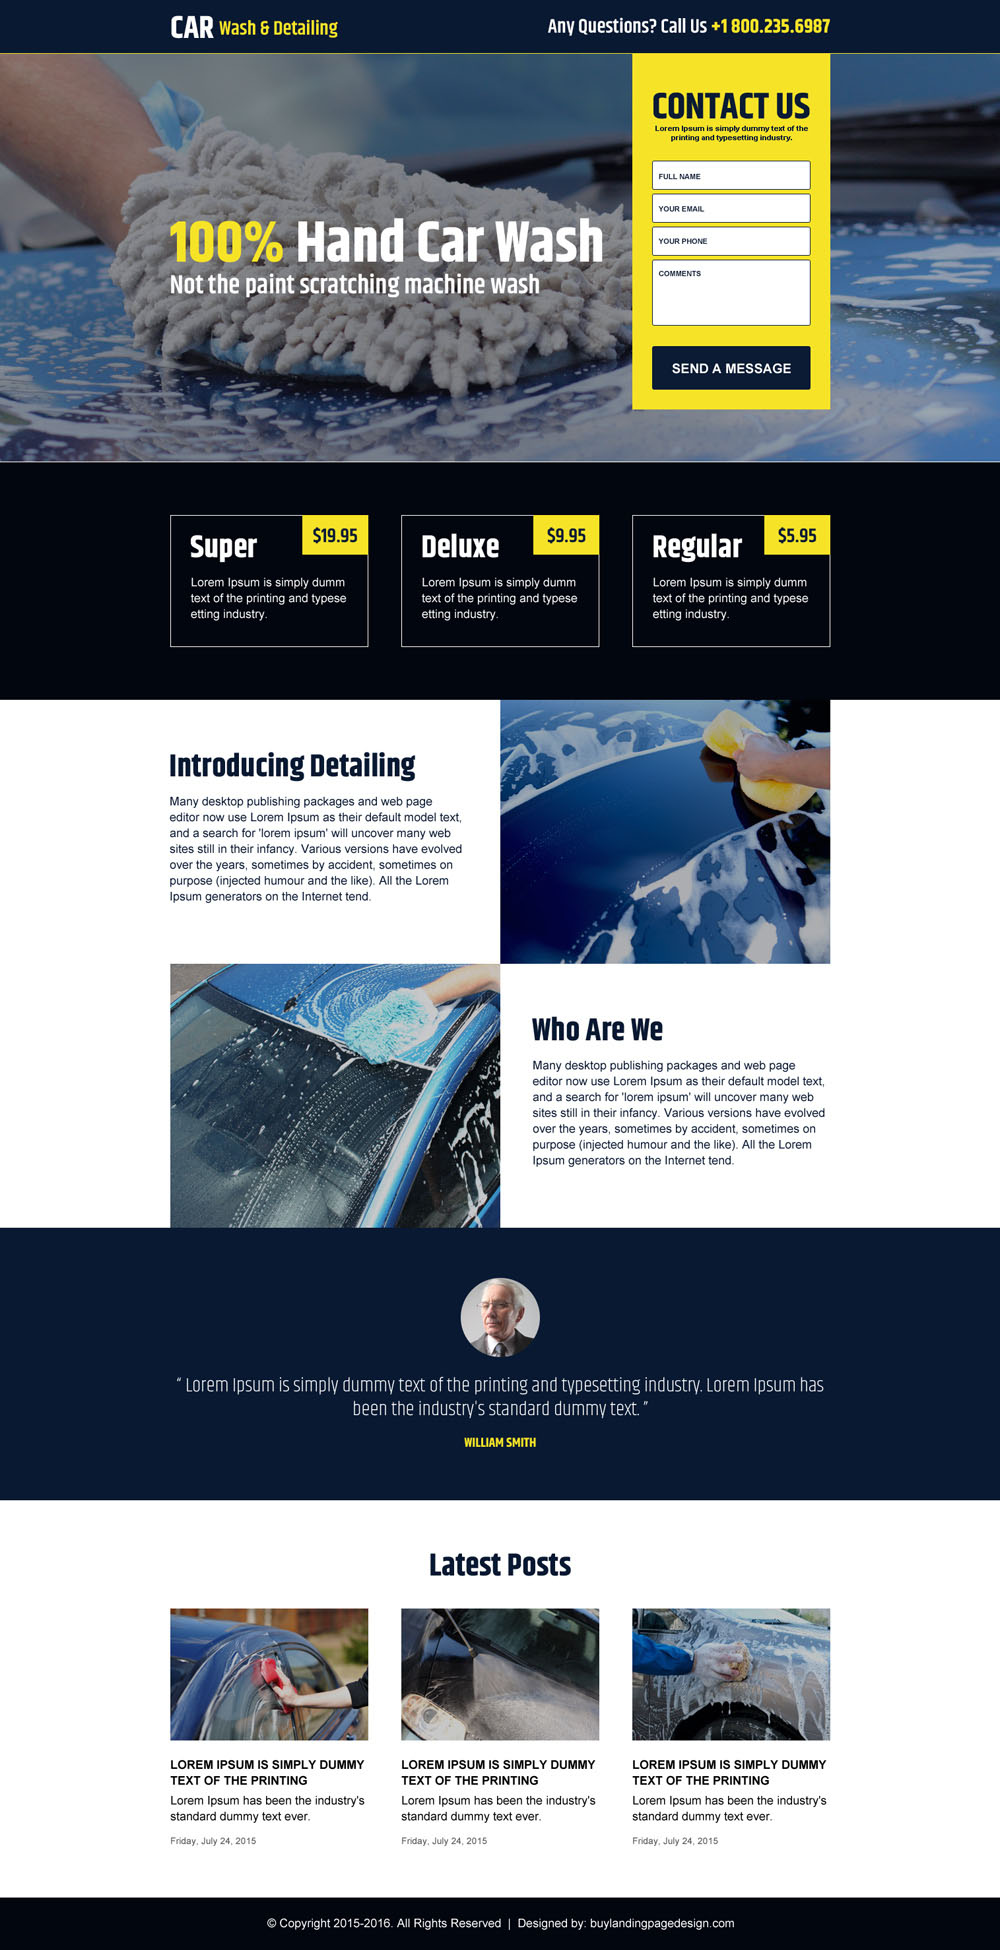 hand-car-wash-and-detailing-leads-generation-converting-landing-page-design-002